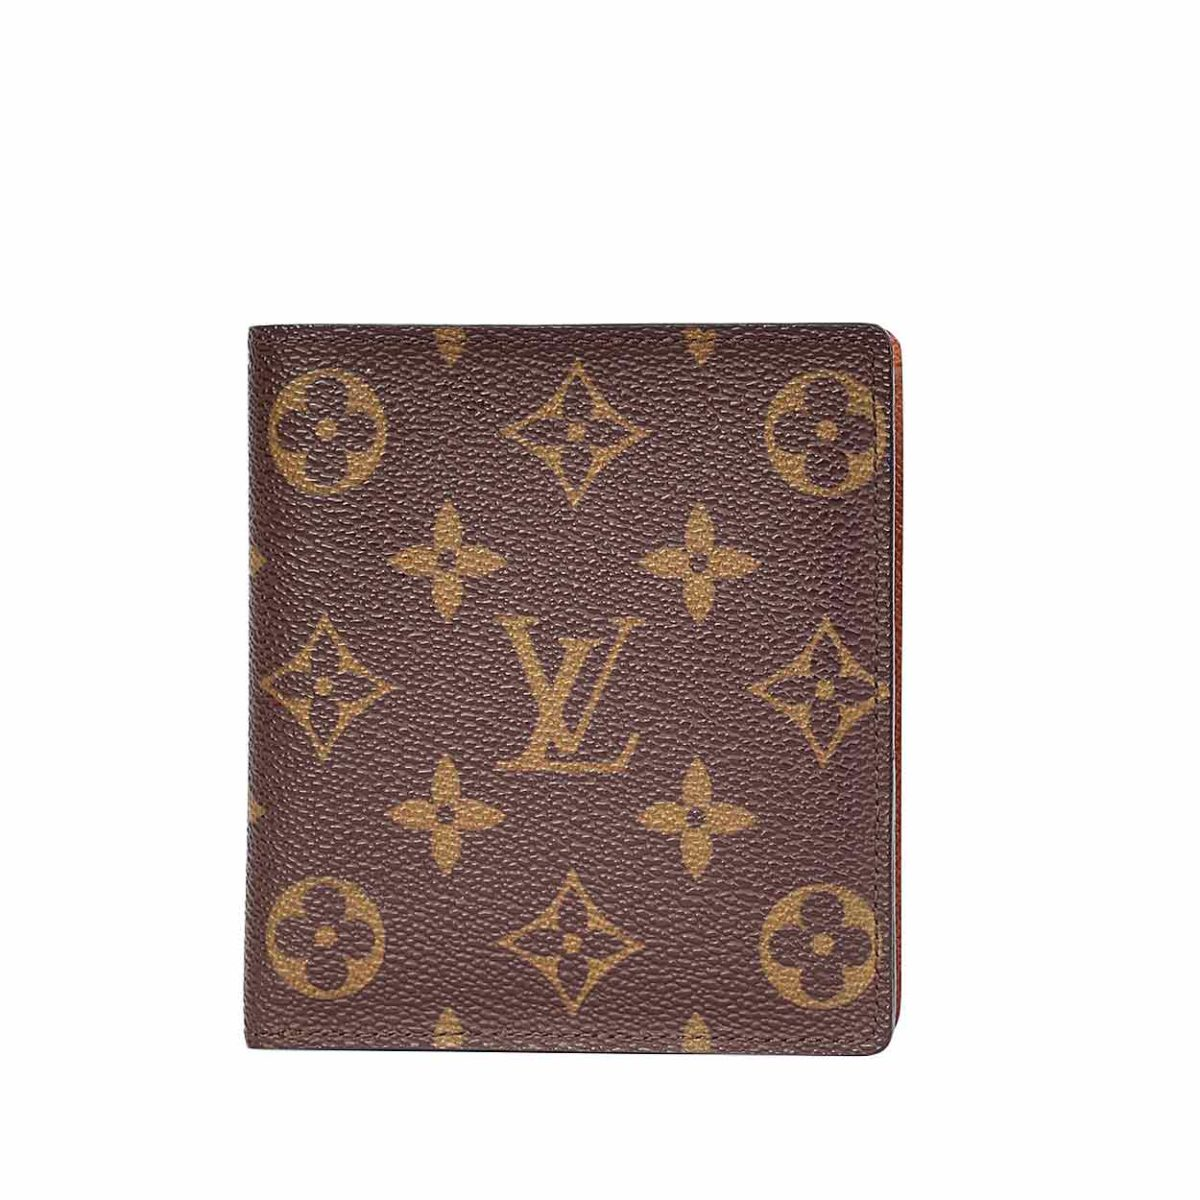 LOUIS VUITTON Monogram Billfold 10 Credit Card Slots ...